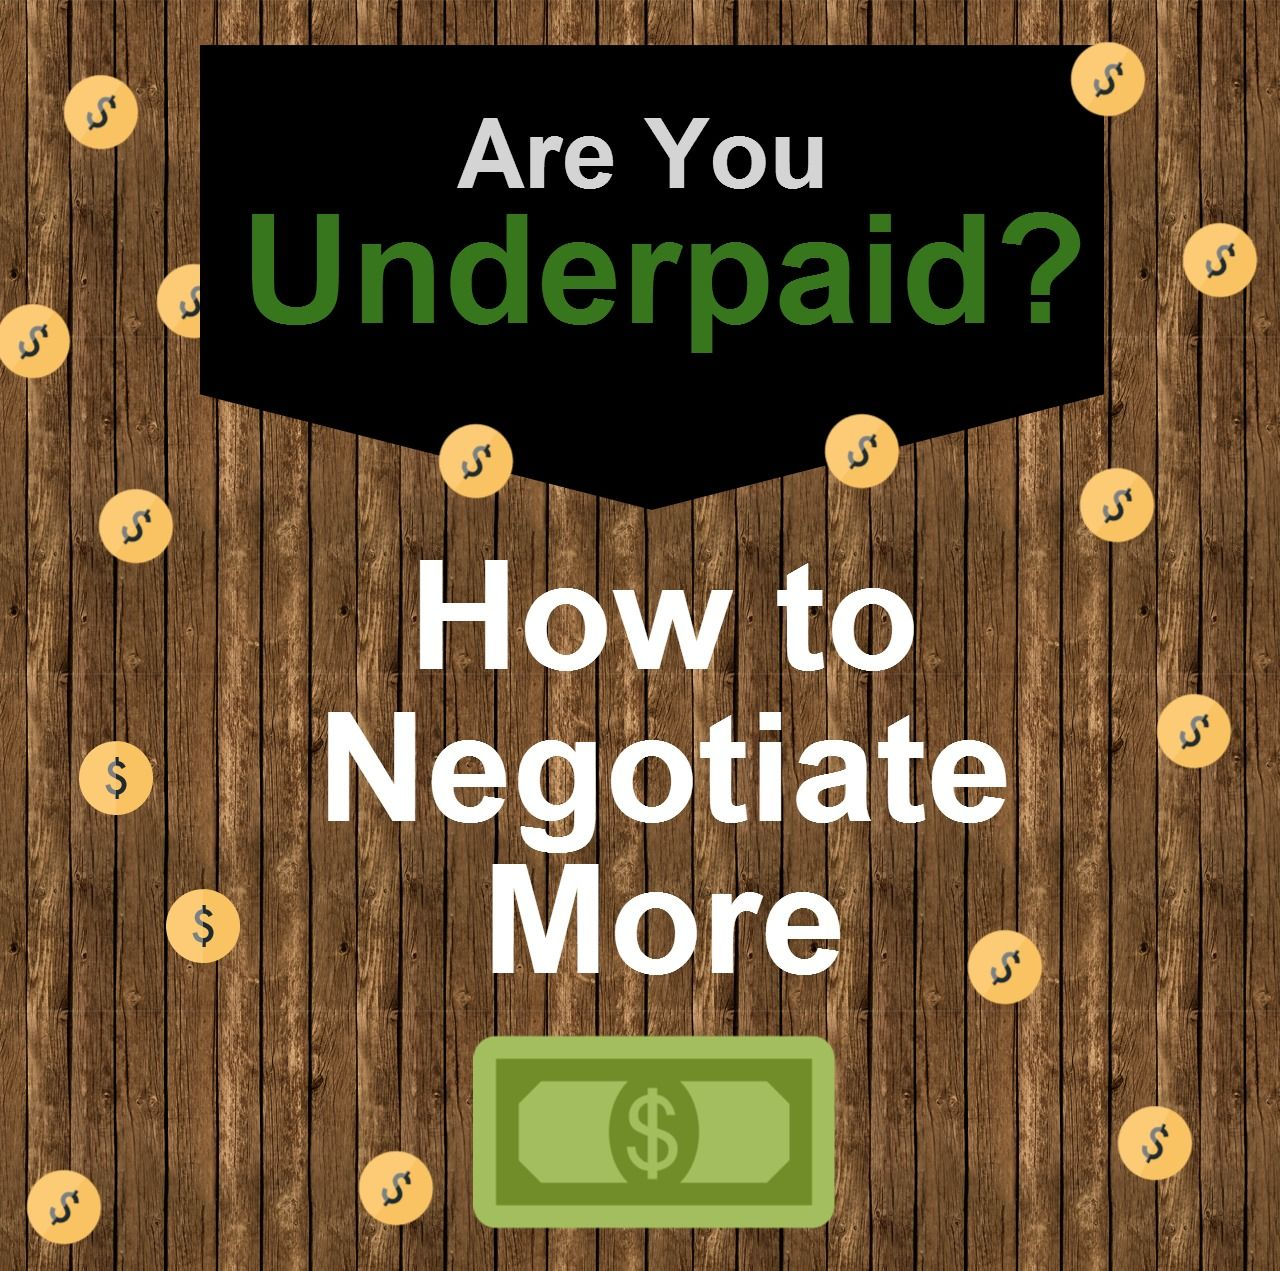 how to negotiate more for your salary salary situations how to negotiate more for your salary